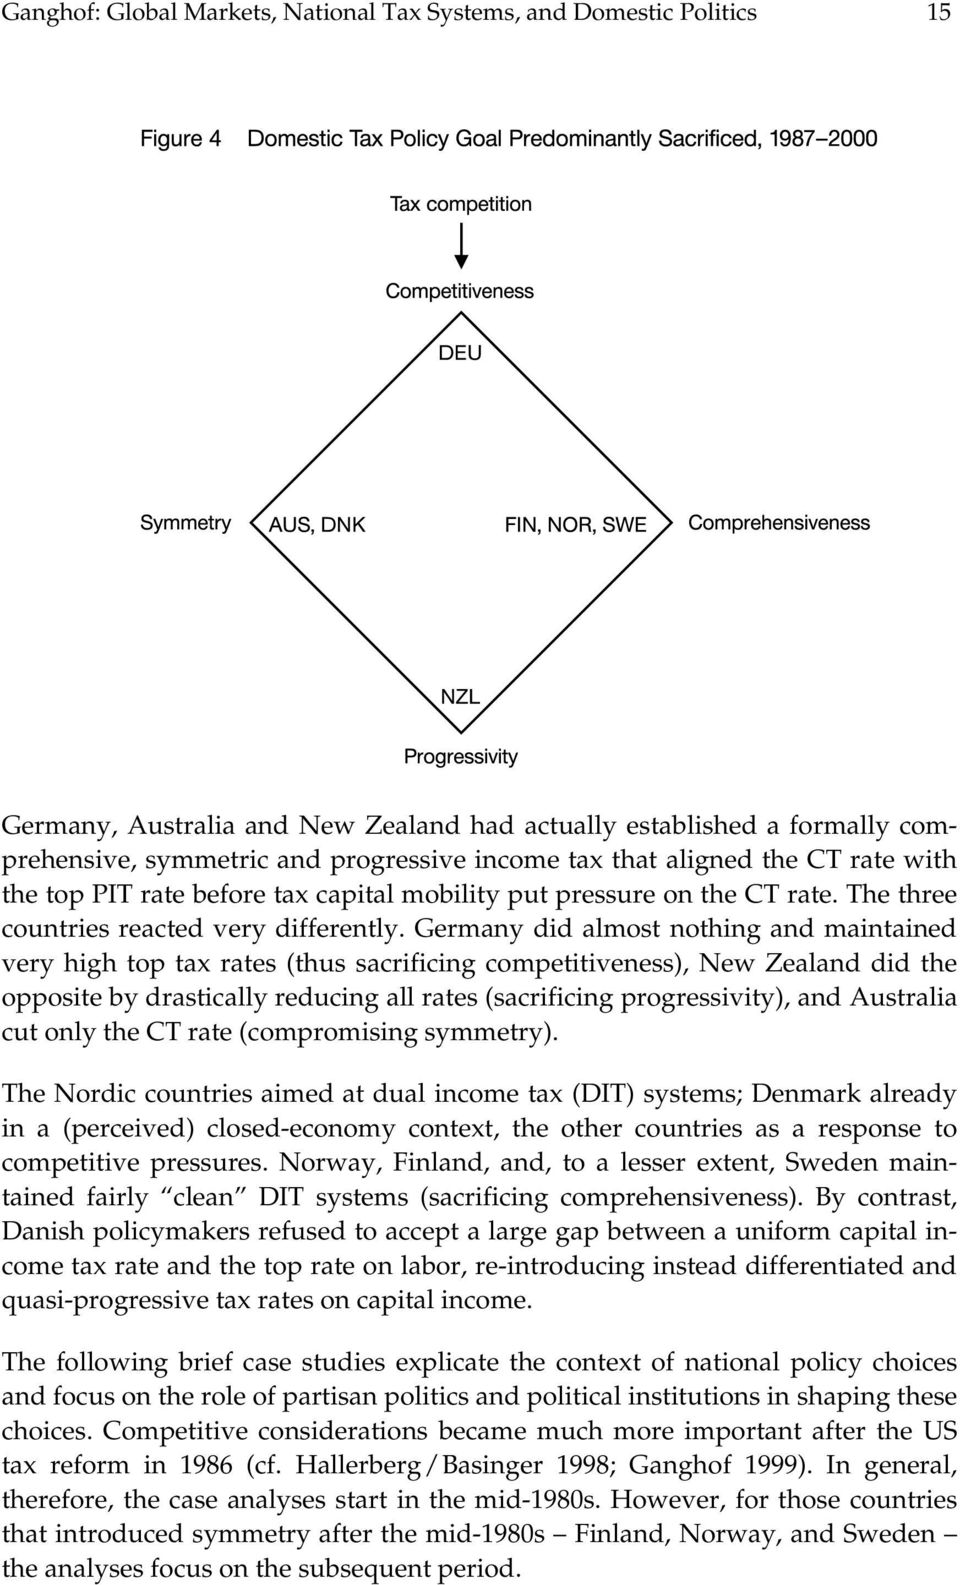 Germany did almost nothing and maintained very high top tax rates (thus sacrificing competitiveness), New Zealand did the opposite by drastically reducing all rates (sacrificing progressivity), and